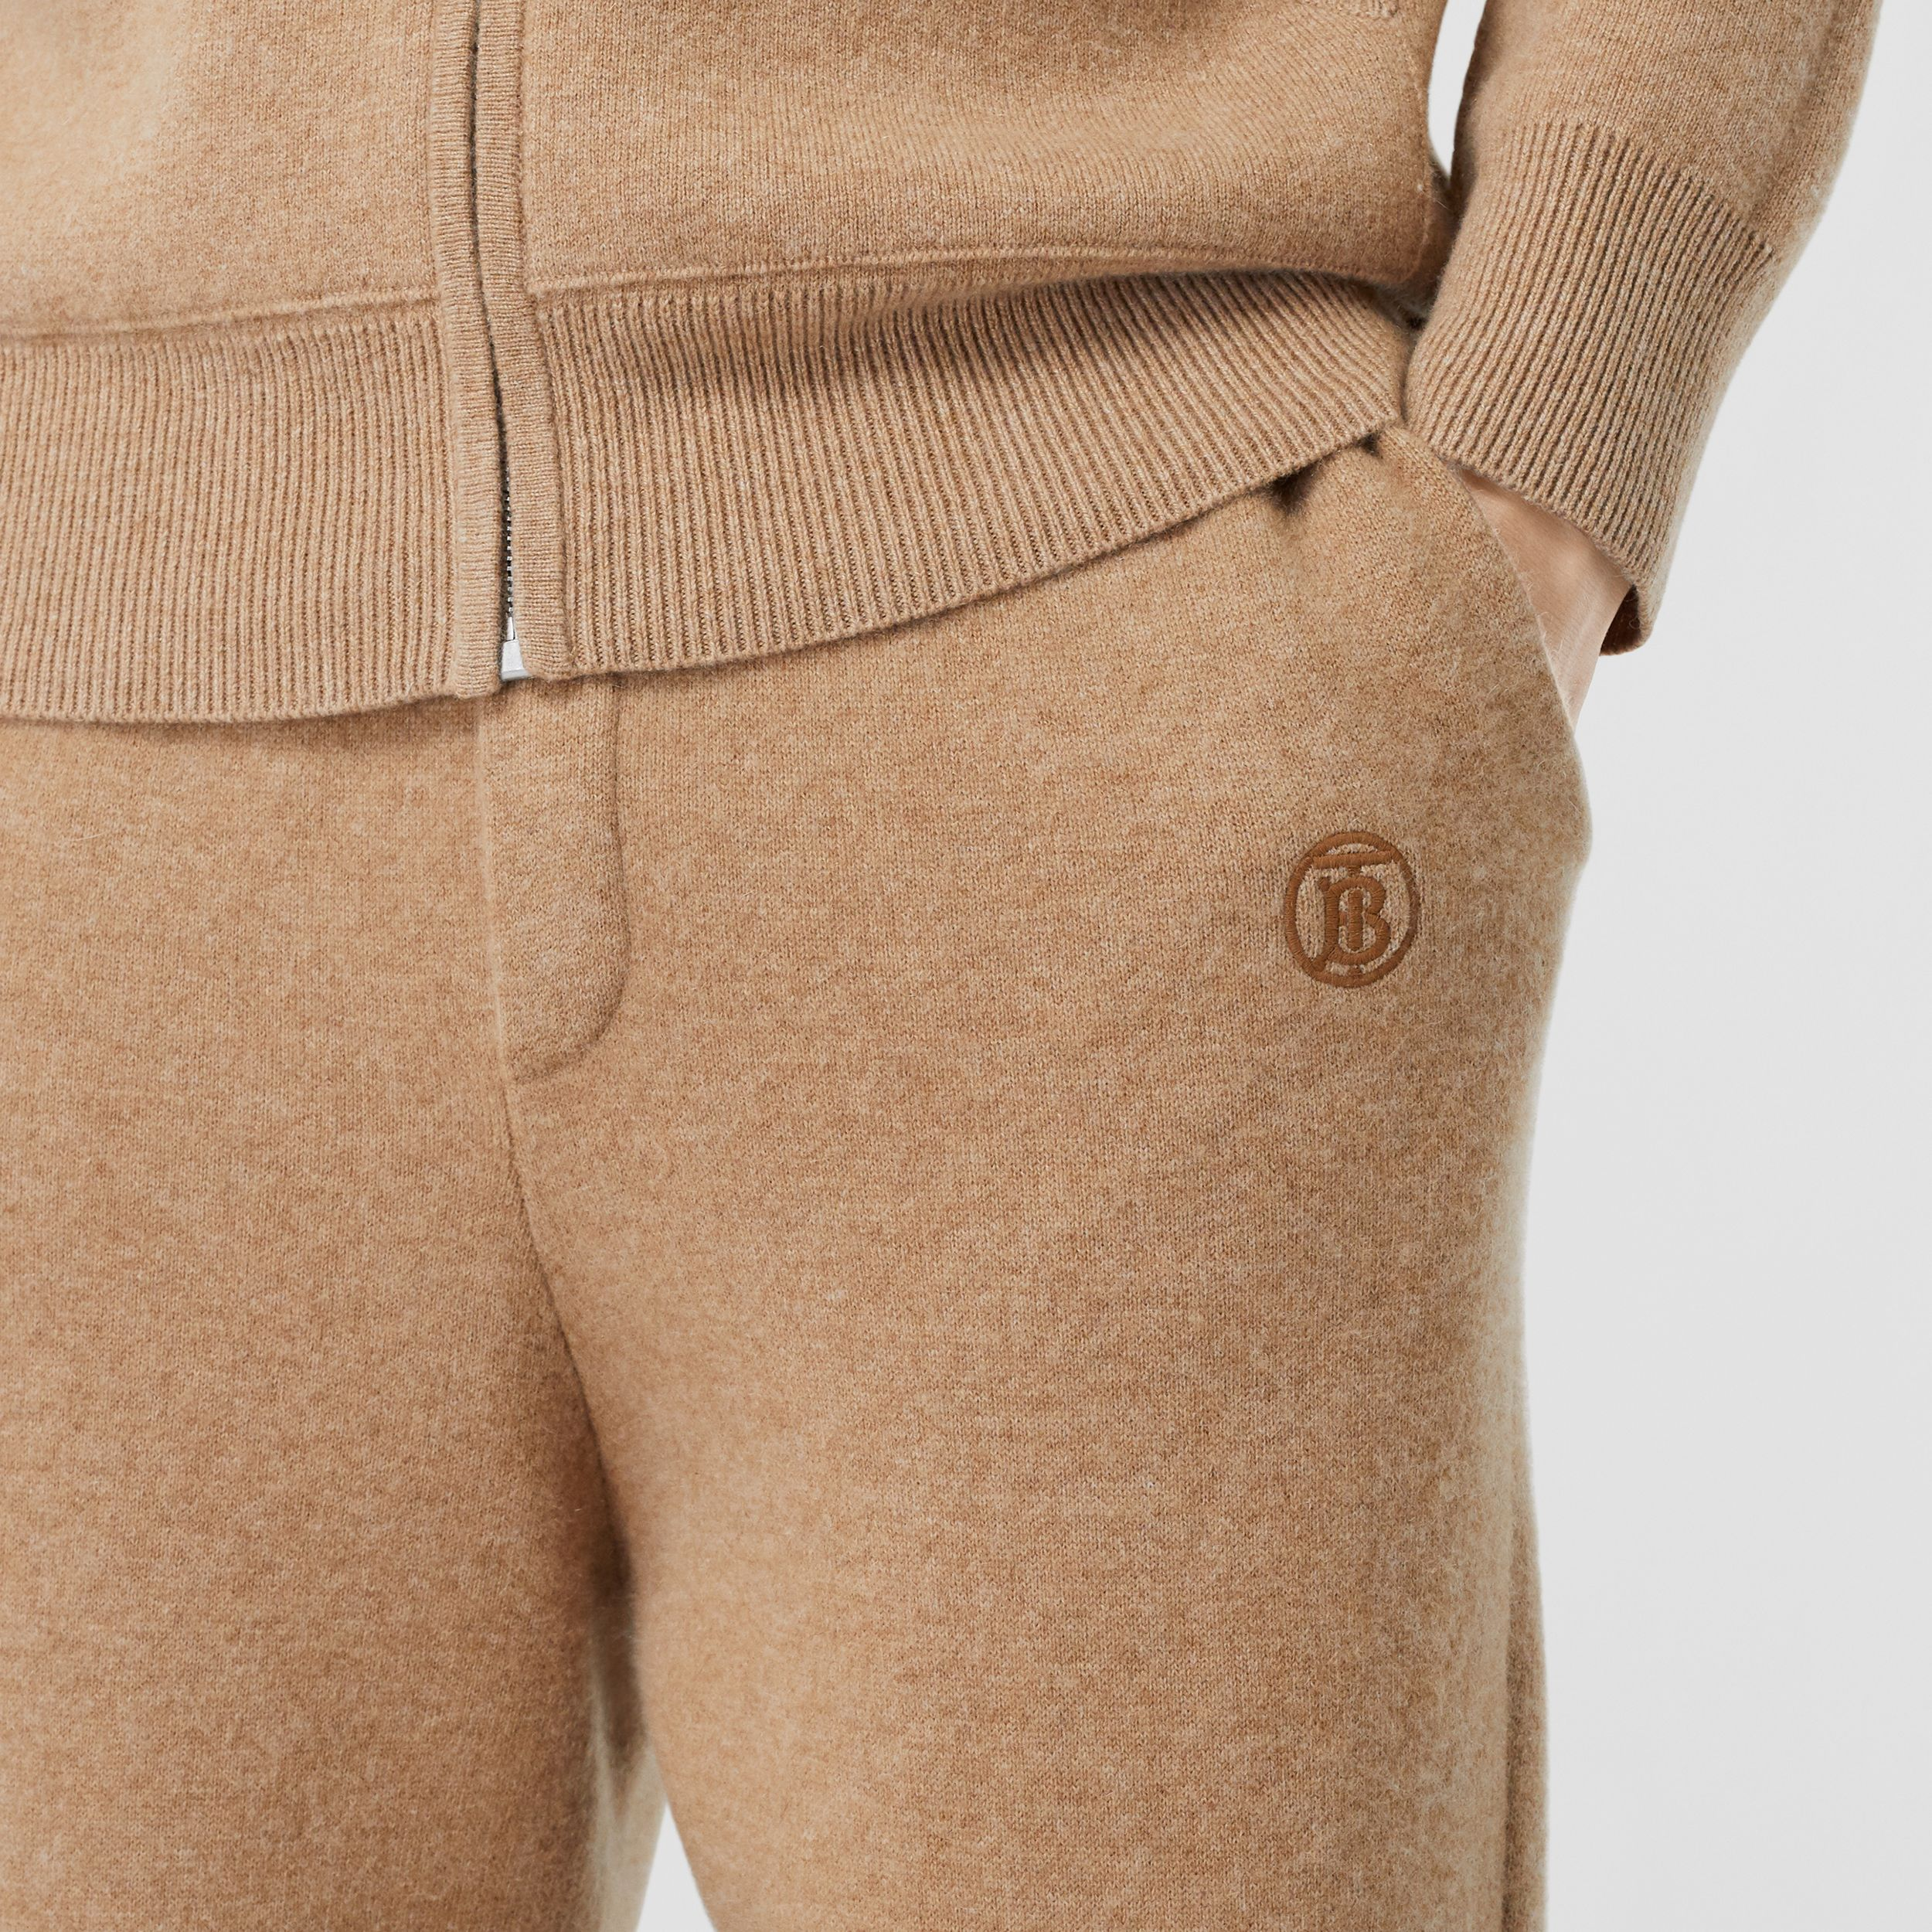 Monogram Motif Cashmere Blend Jogging Pants in Pale Coffee - Men | Burberry Hong Kong S.A.R. - 2